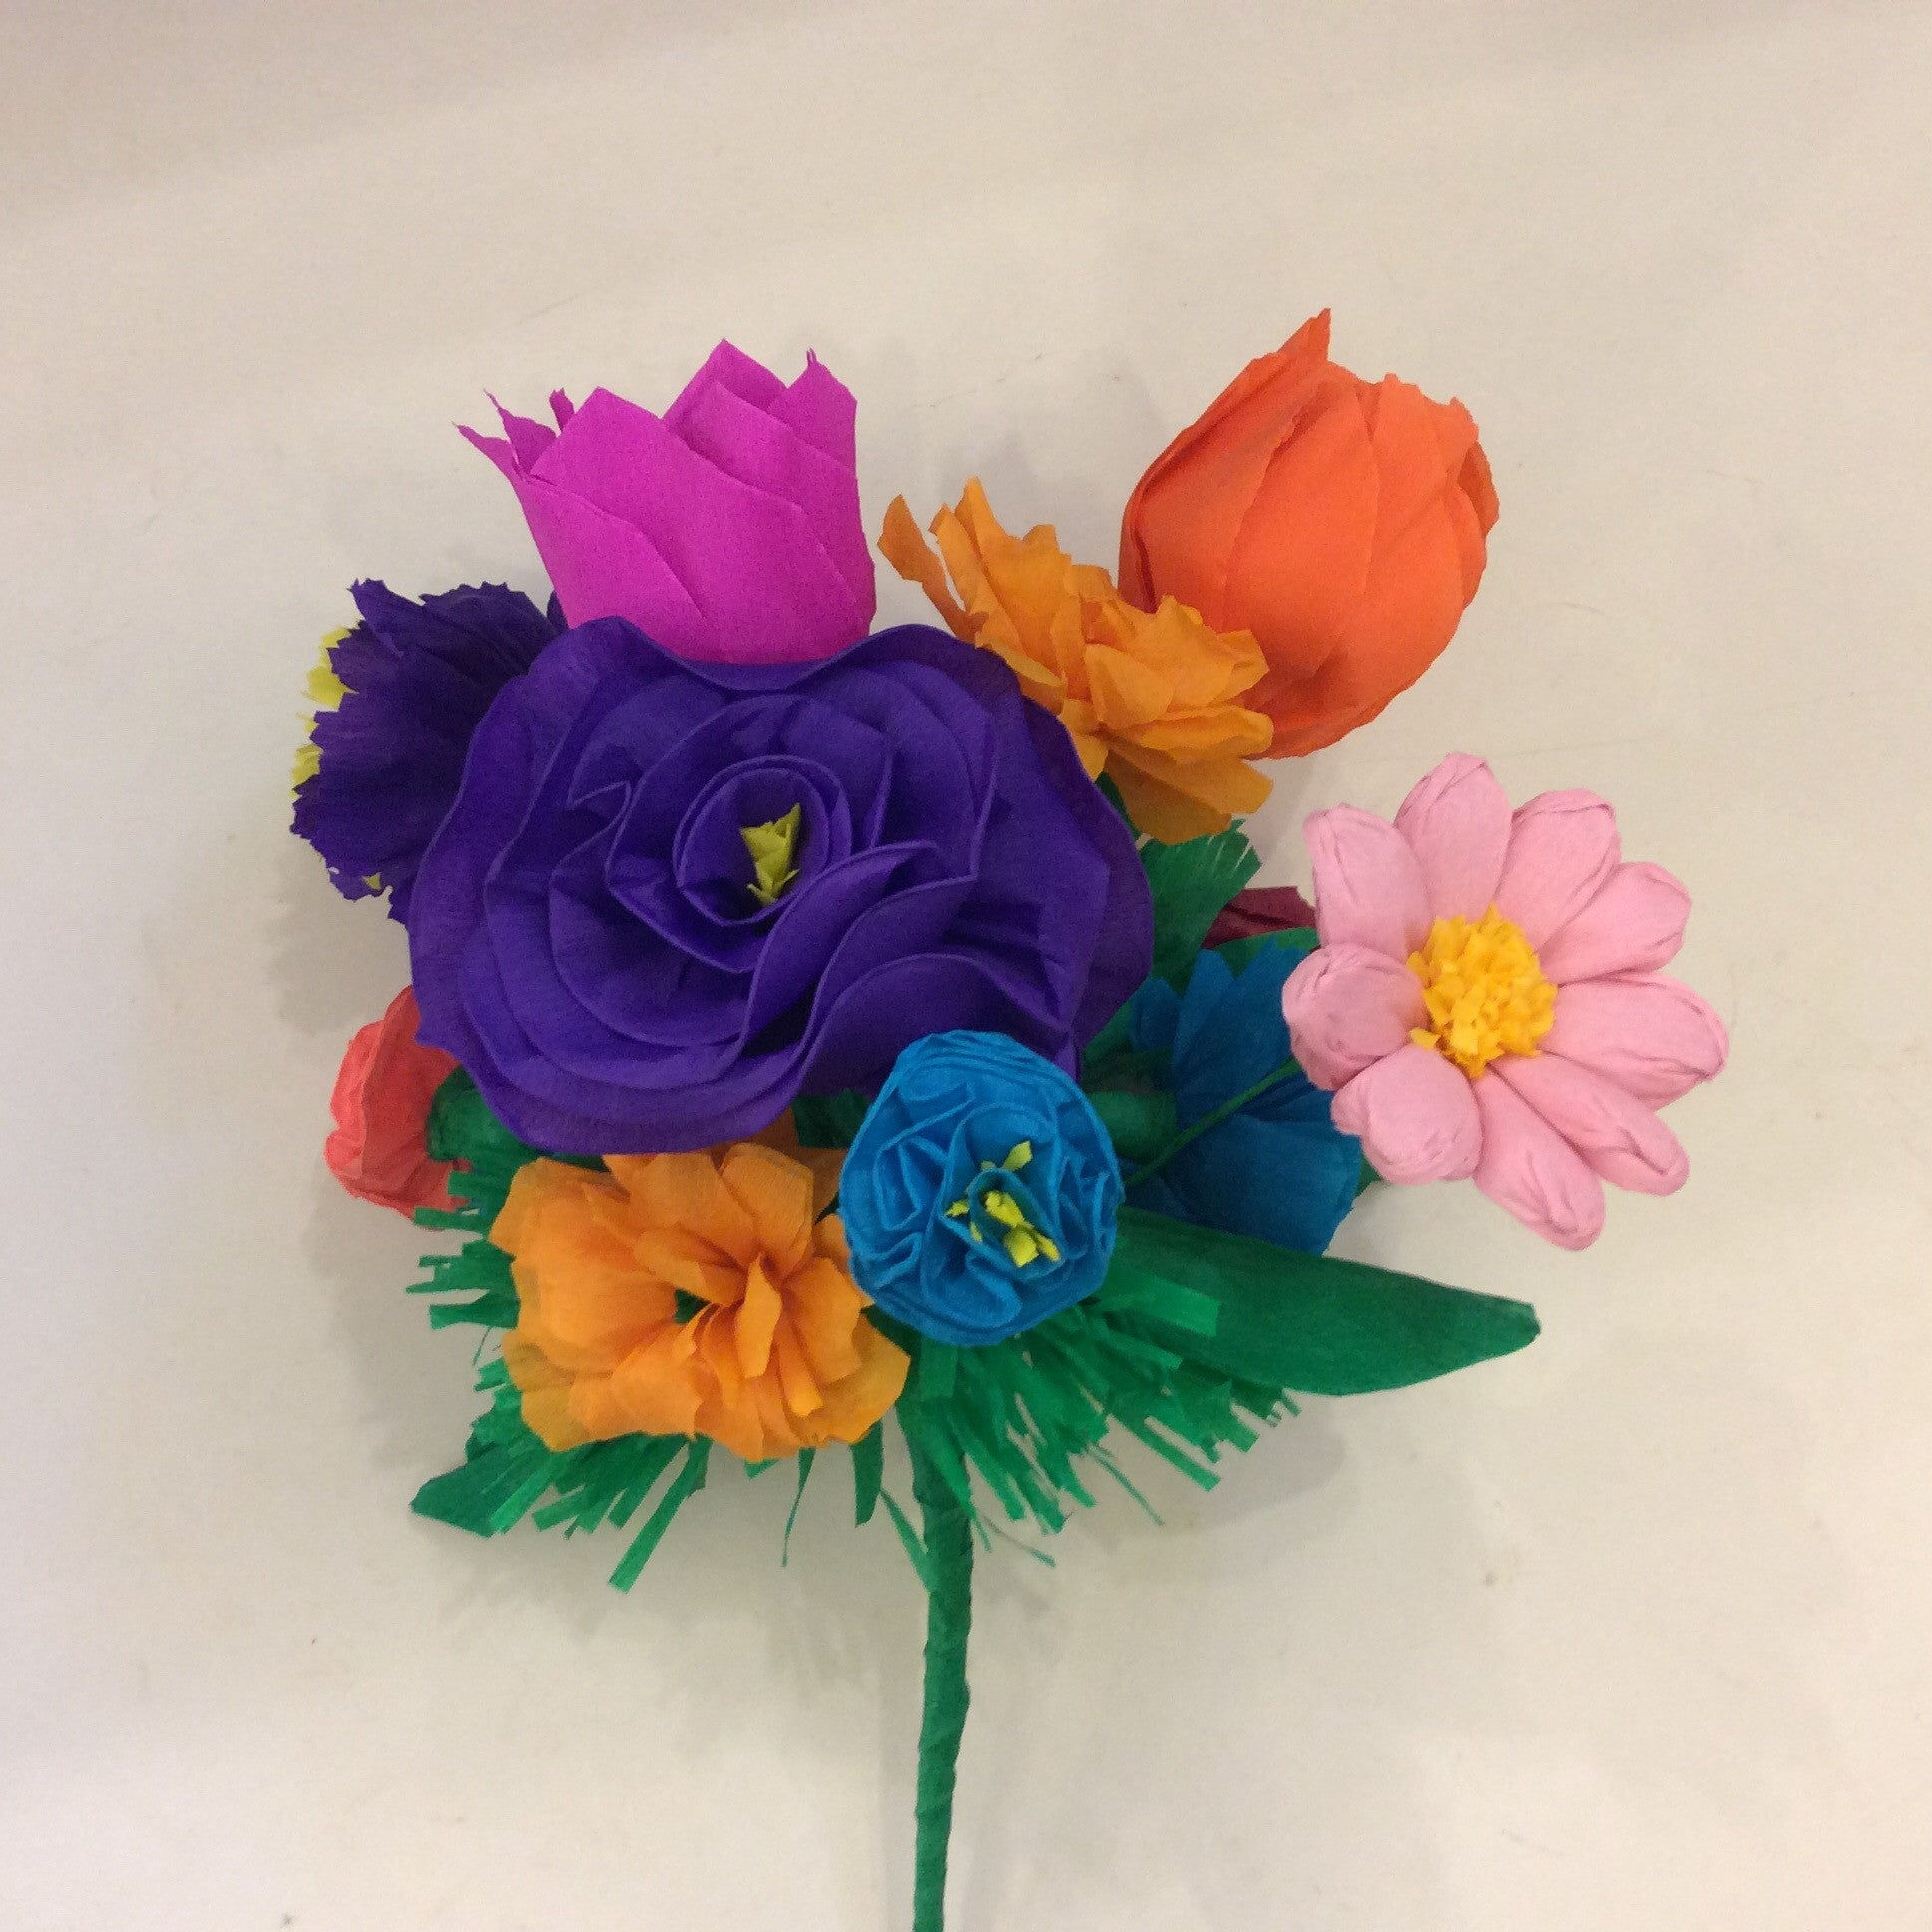 Mexican Paper Flower Bouquet Willdflower Bunch Surroundingshouston